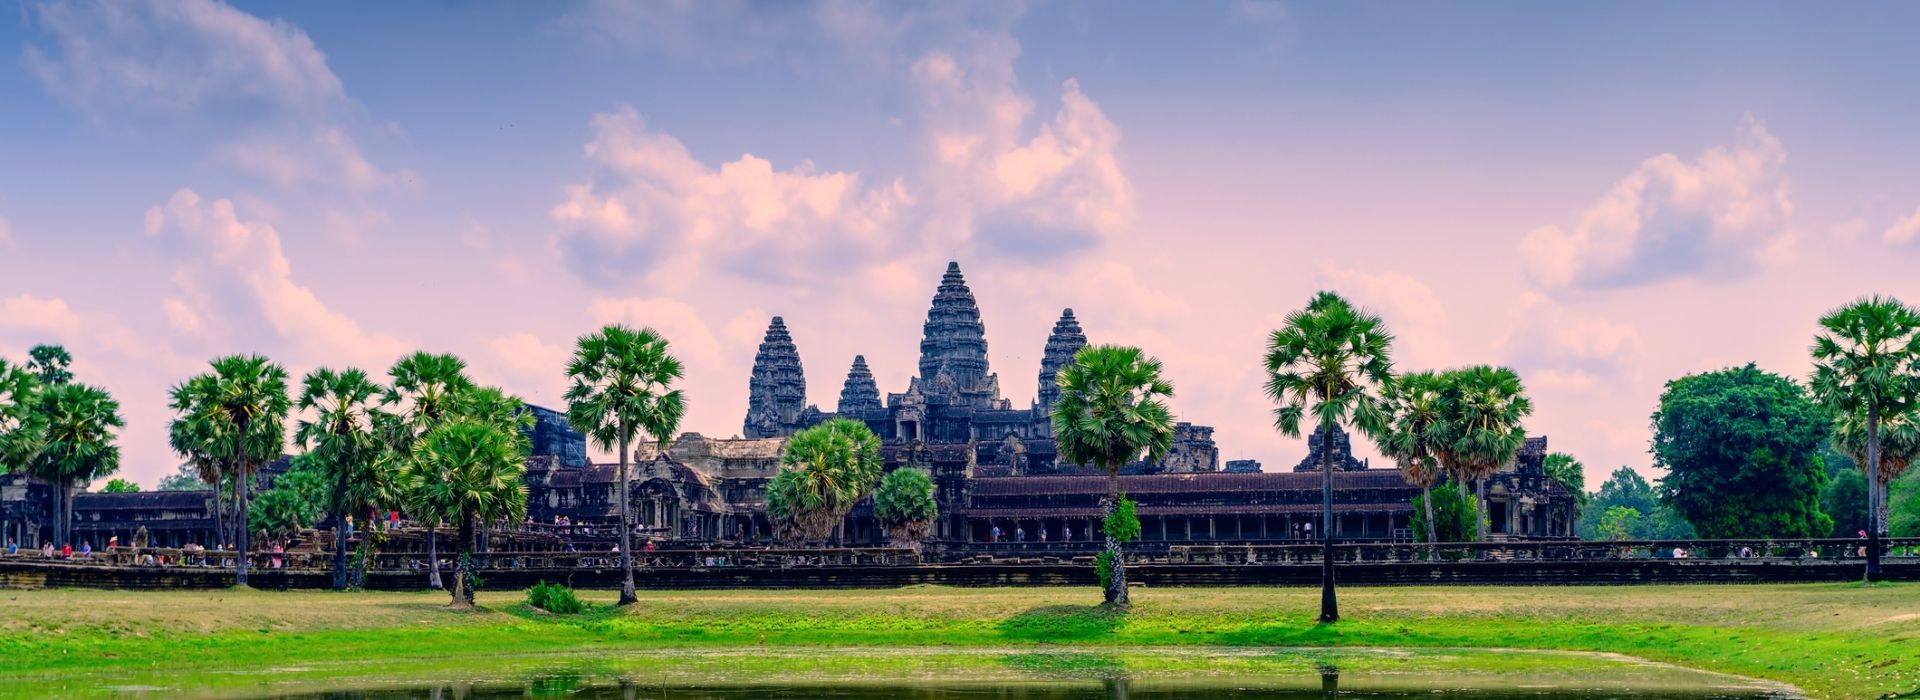 Cultural, religious and historic sites Tours in Angkor Wat